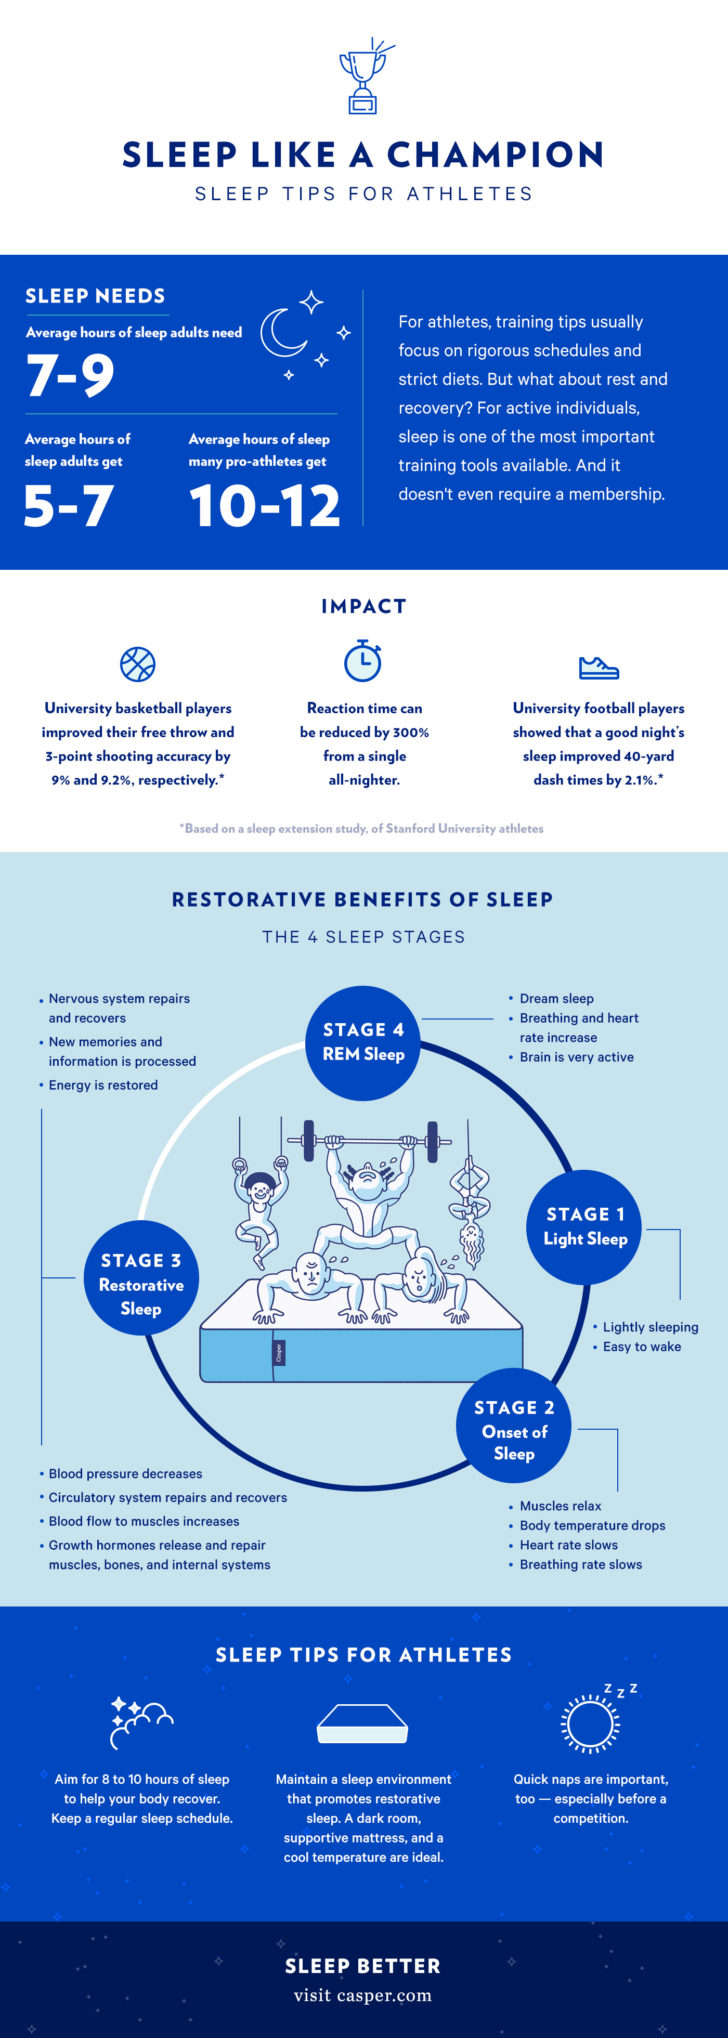 rest more to achieve optimal physical performance